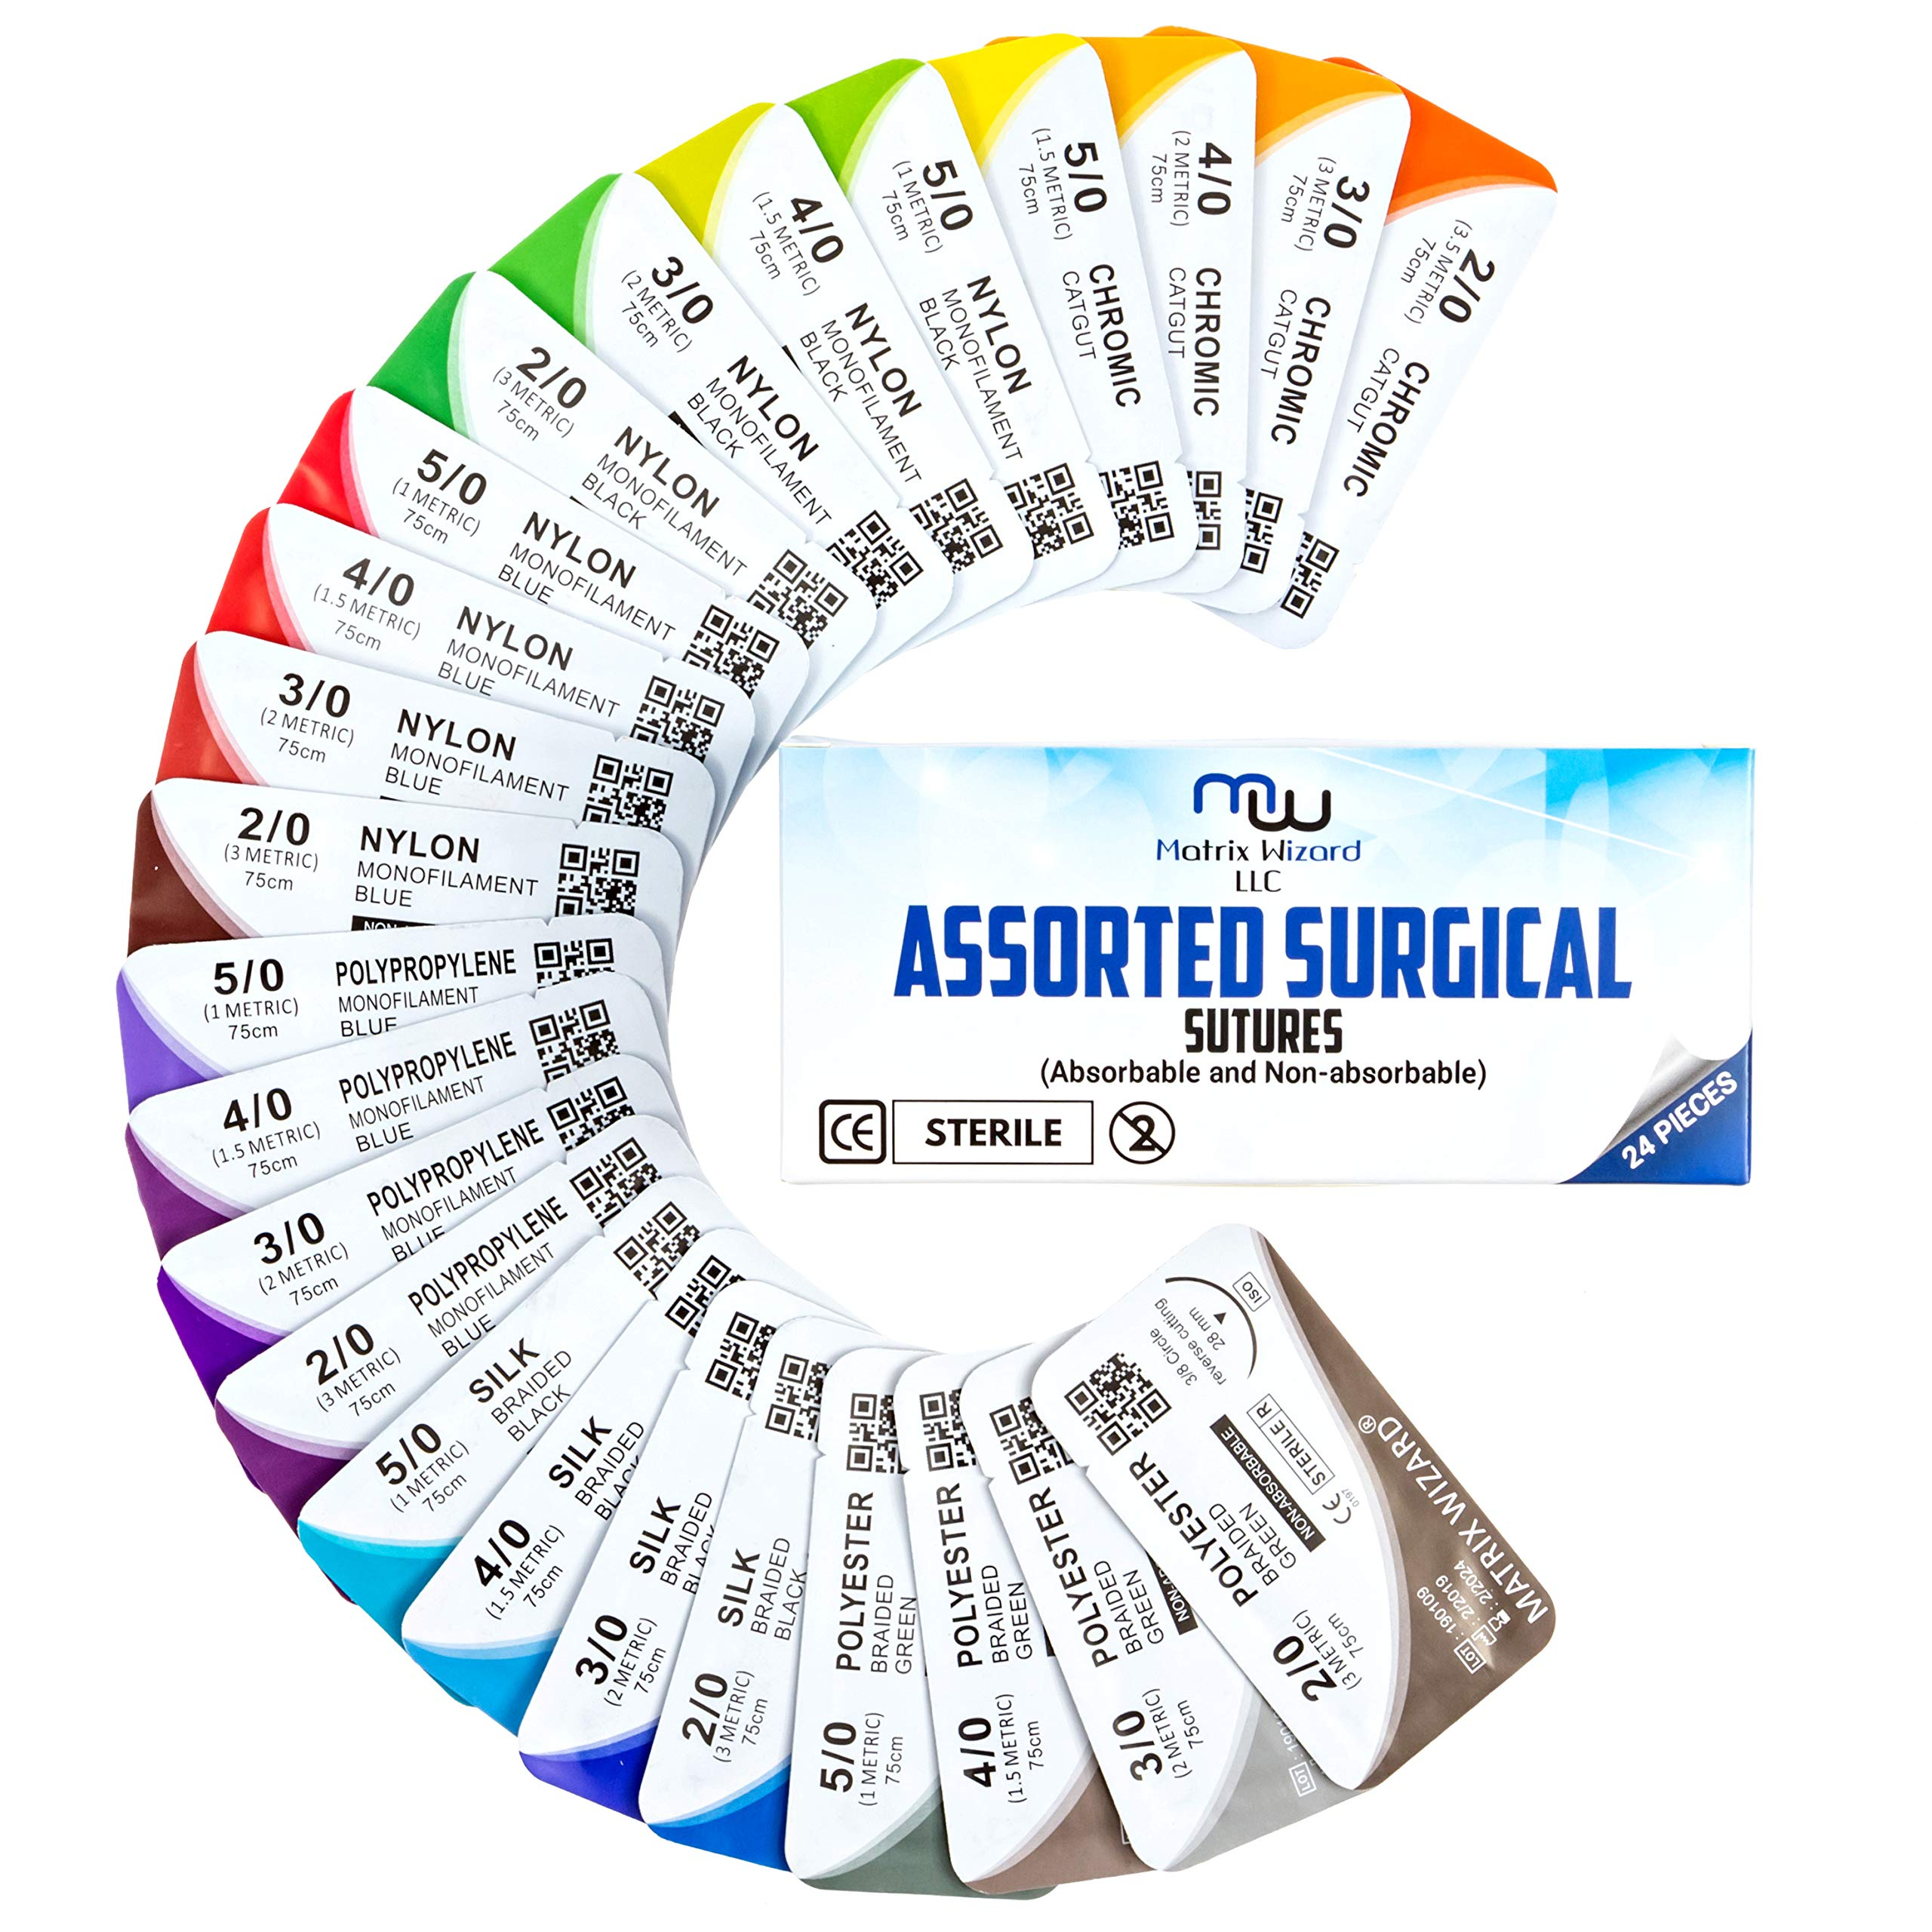 Mixed Sutures Thread with Needle (Absorbable: Chromic Catgut; Non-Absorbable: Nylon, Silk, Polyester, Polypropylene) - Surgical Wound Practice Kit, Emergency First Aid Demo (2-0, 3-0, 4-0, 5-0) 24Pk by Matrix Wizard (Image #9)